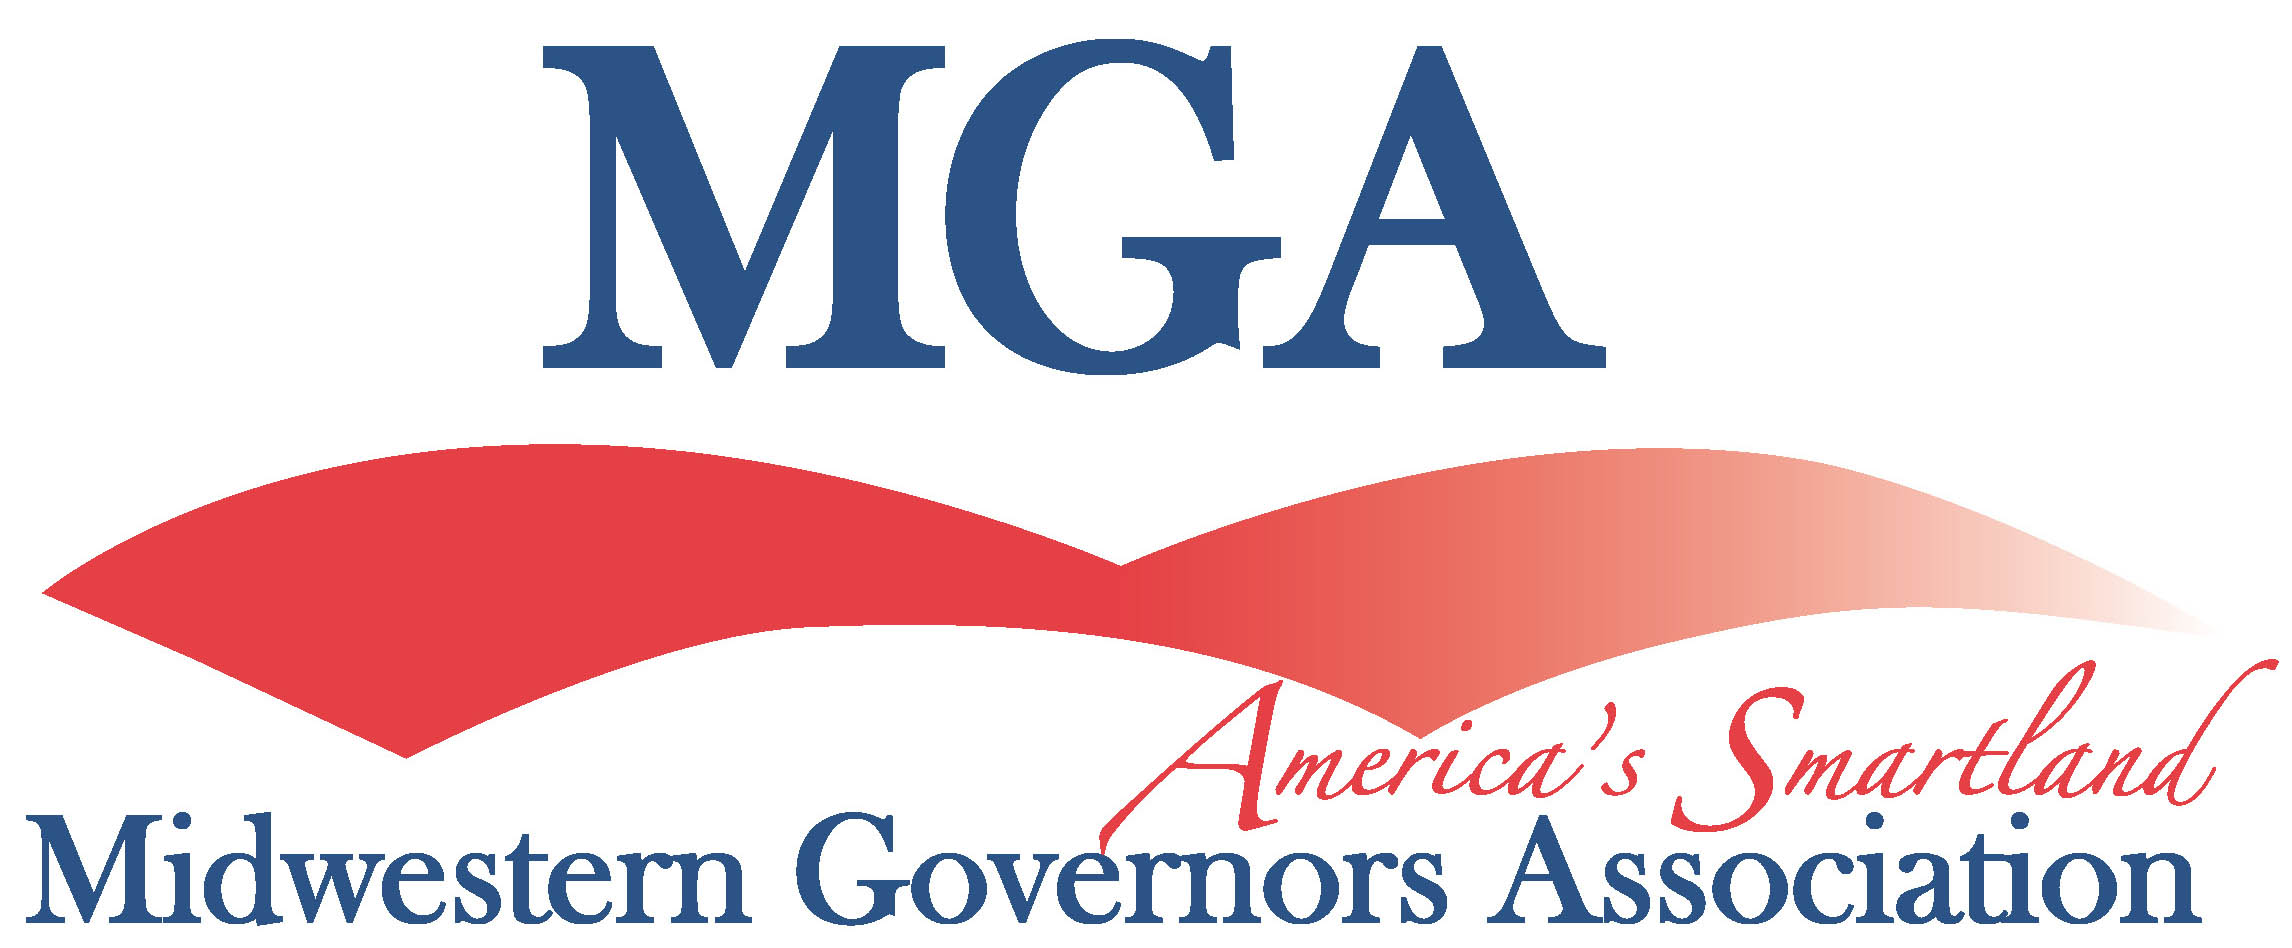 Midwestern Governors Association